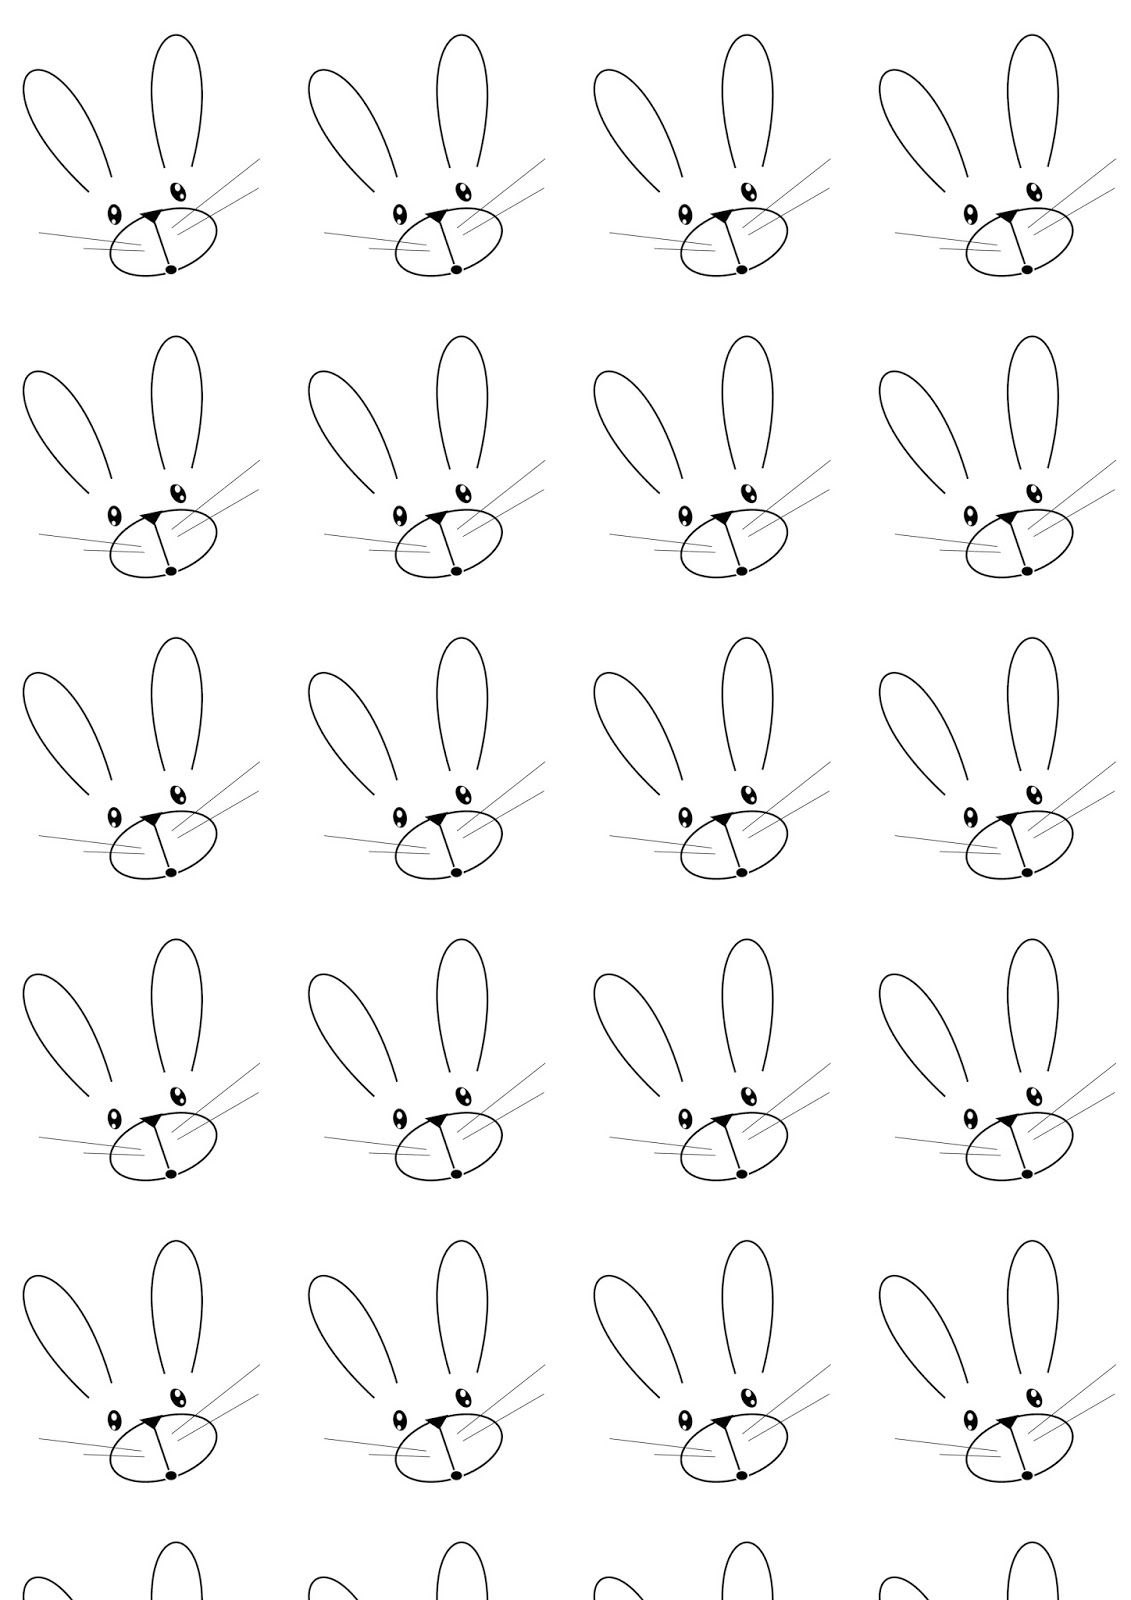 Bunny Patterns Printables Simple Design Ideas